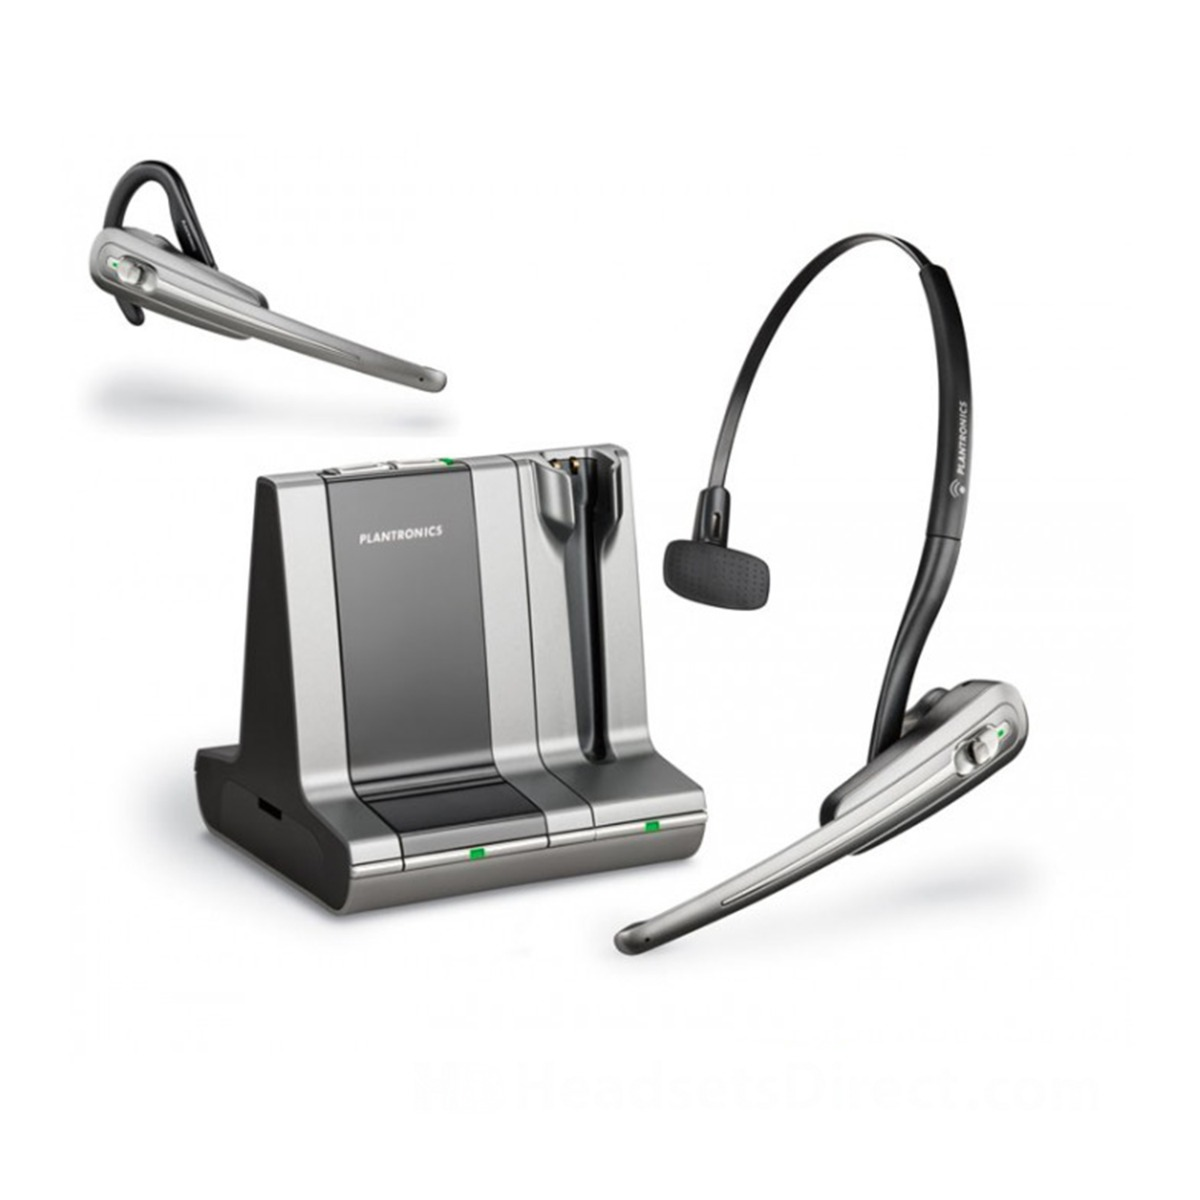 Pc Telefon Headset Inalámbrico Plantronics Savi Office Wo100 Pc Telefon